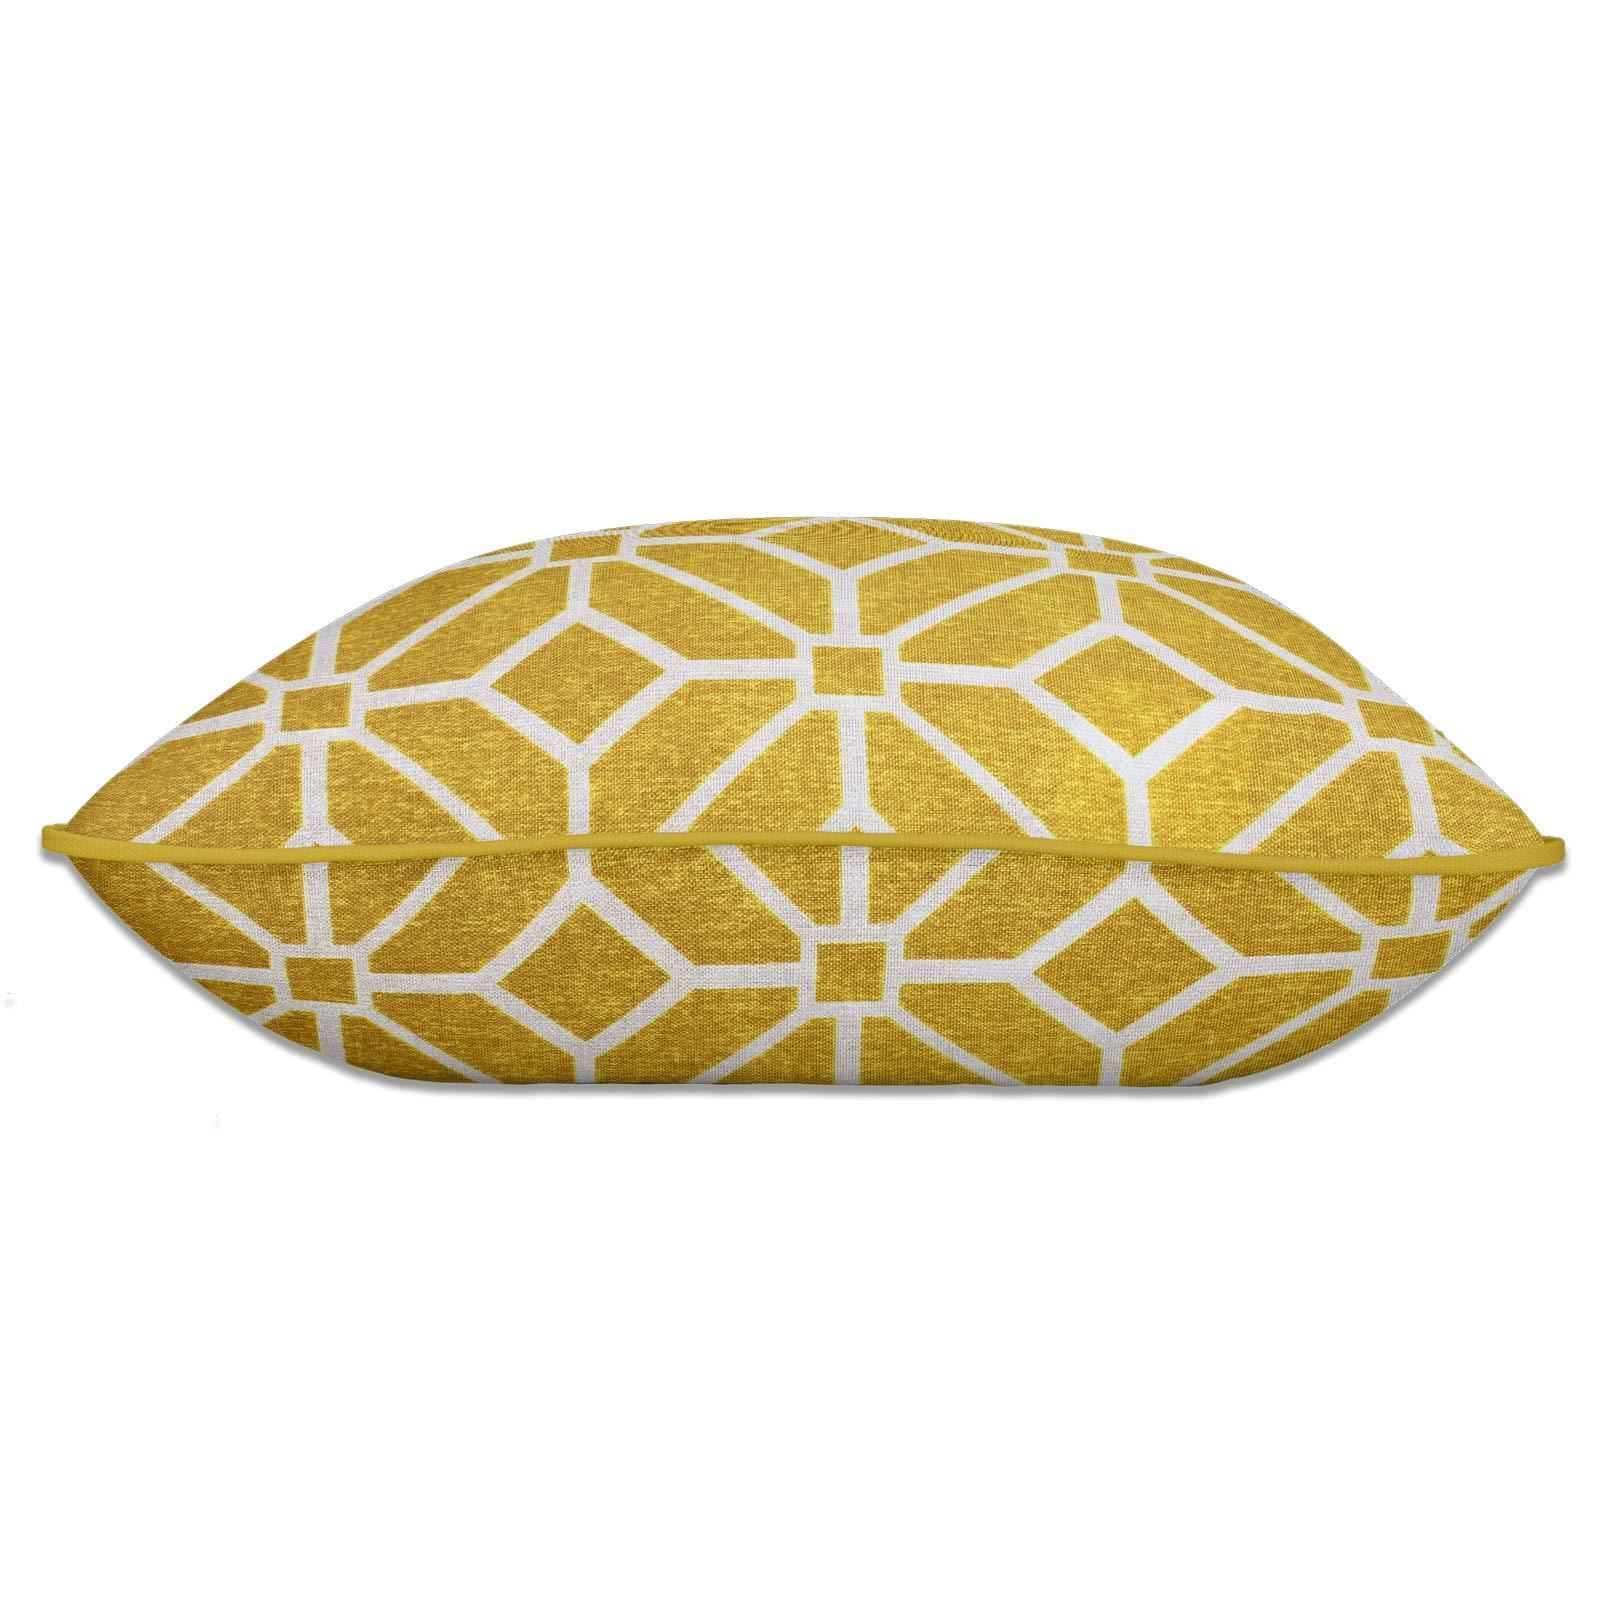 Grey-Ochre-Mustard-Cushion-Cover-Collection-17-034-18-034-Covers-Filled-Cushions thumbnail 93